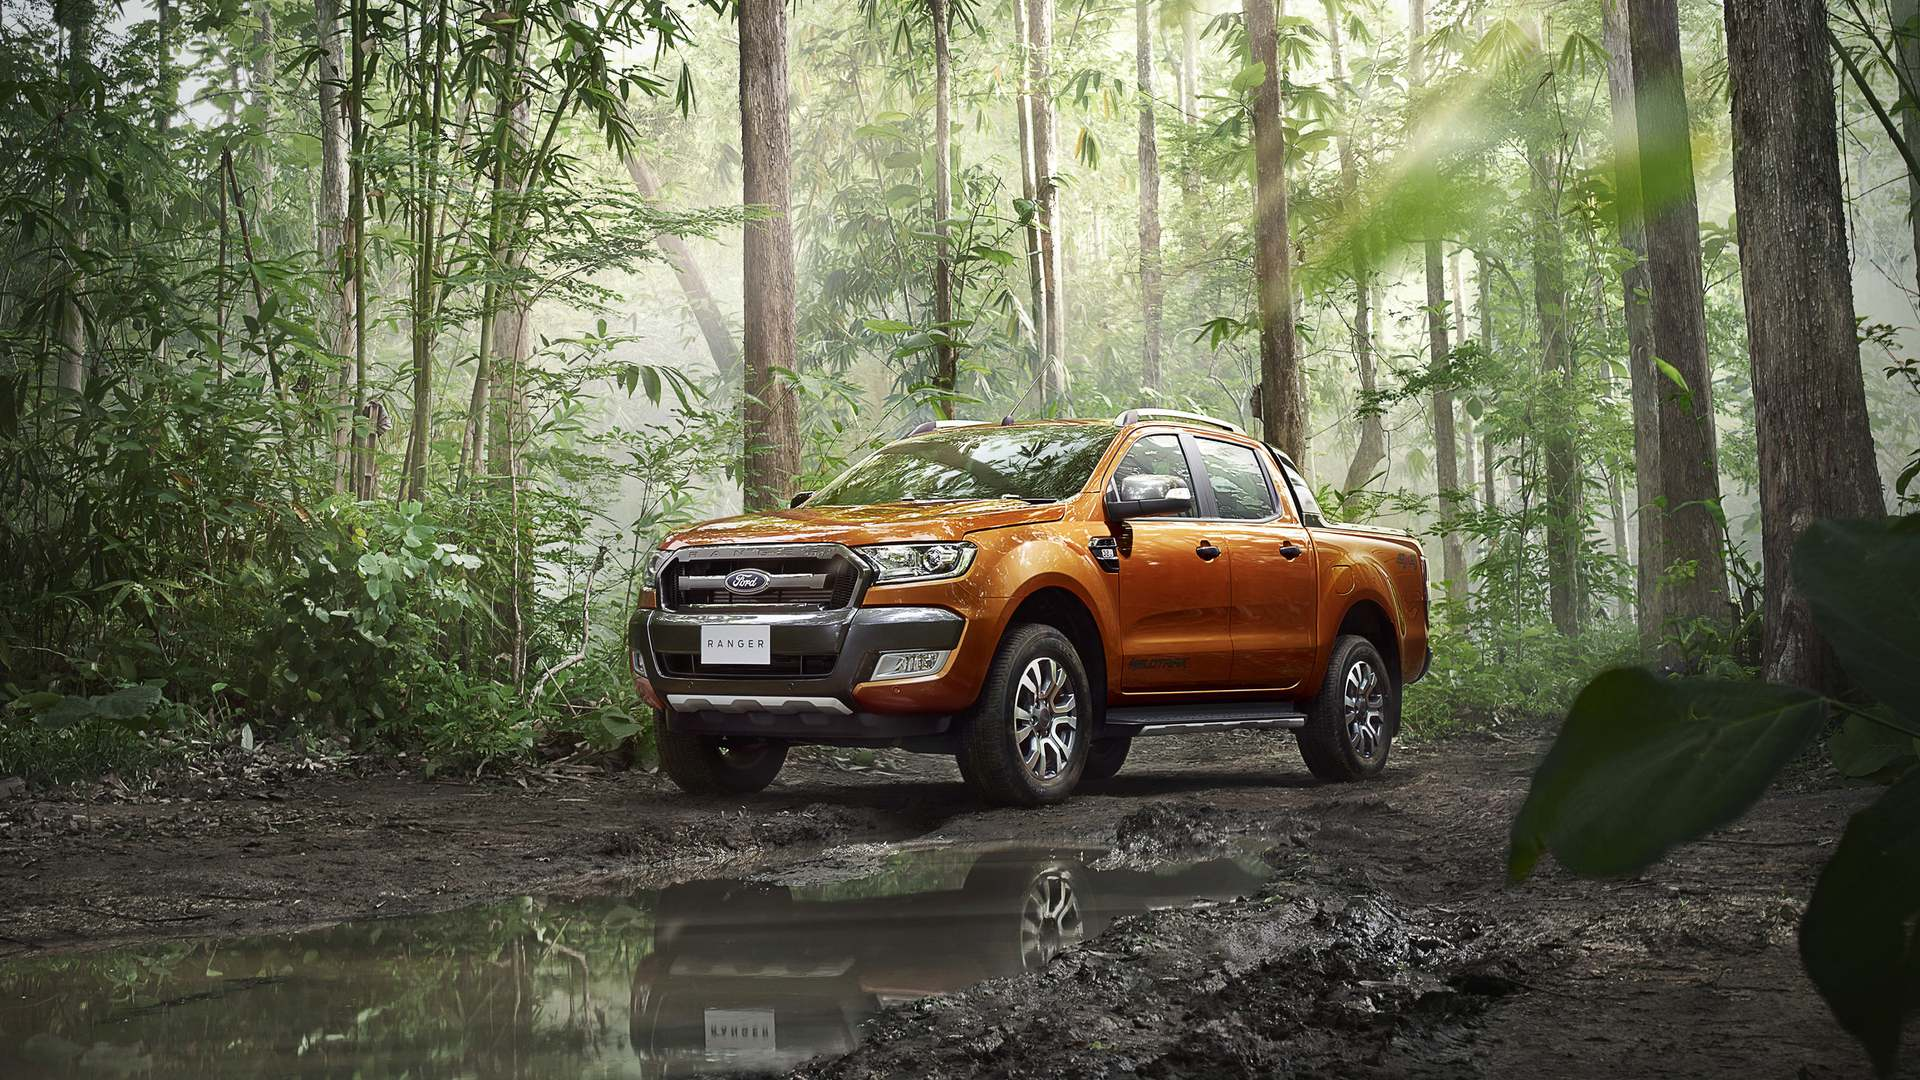 Ford-Ranger-Wildtrak-wallpaper-wpc9001315